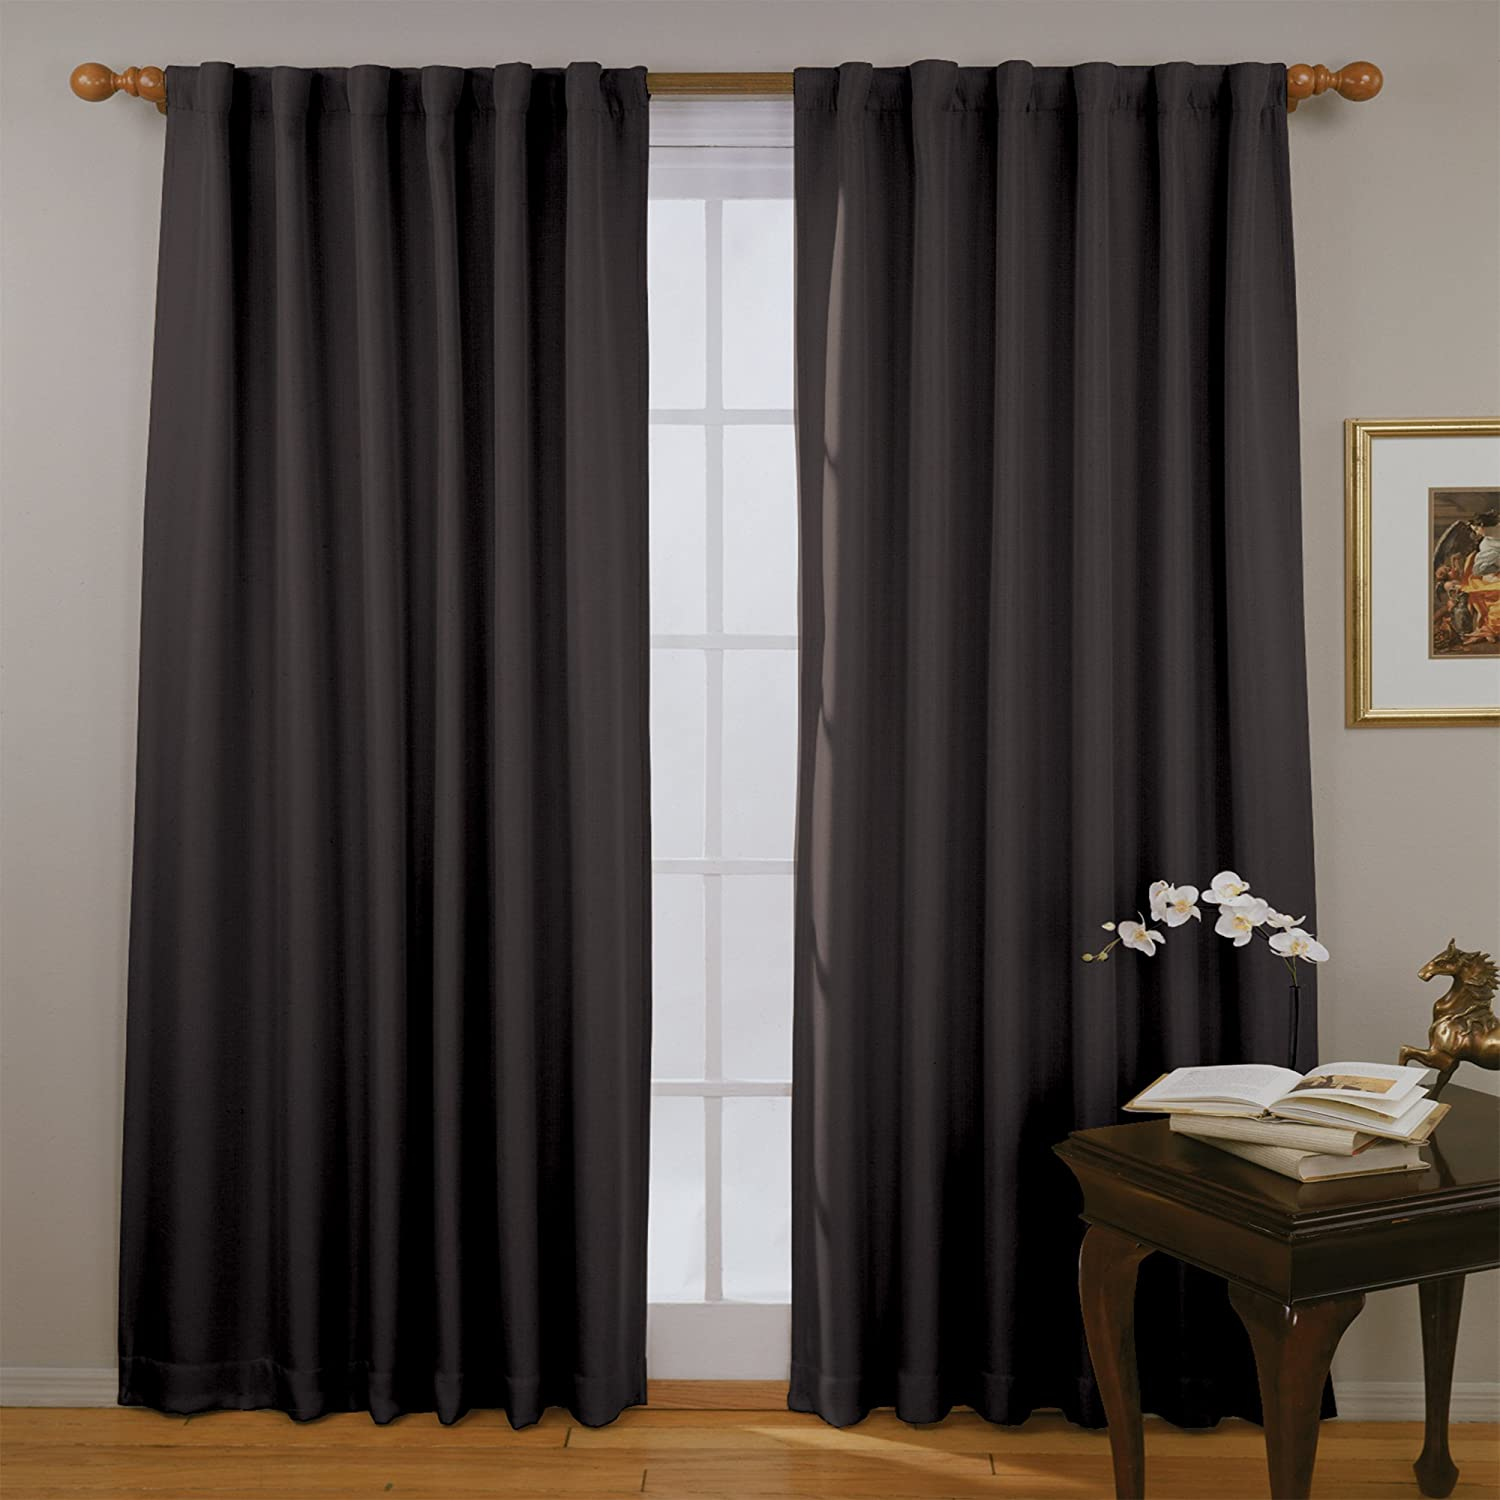 ECLIPSE Blackout Curtains for Bedroom - Fresno 52\